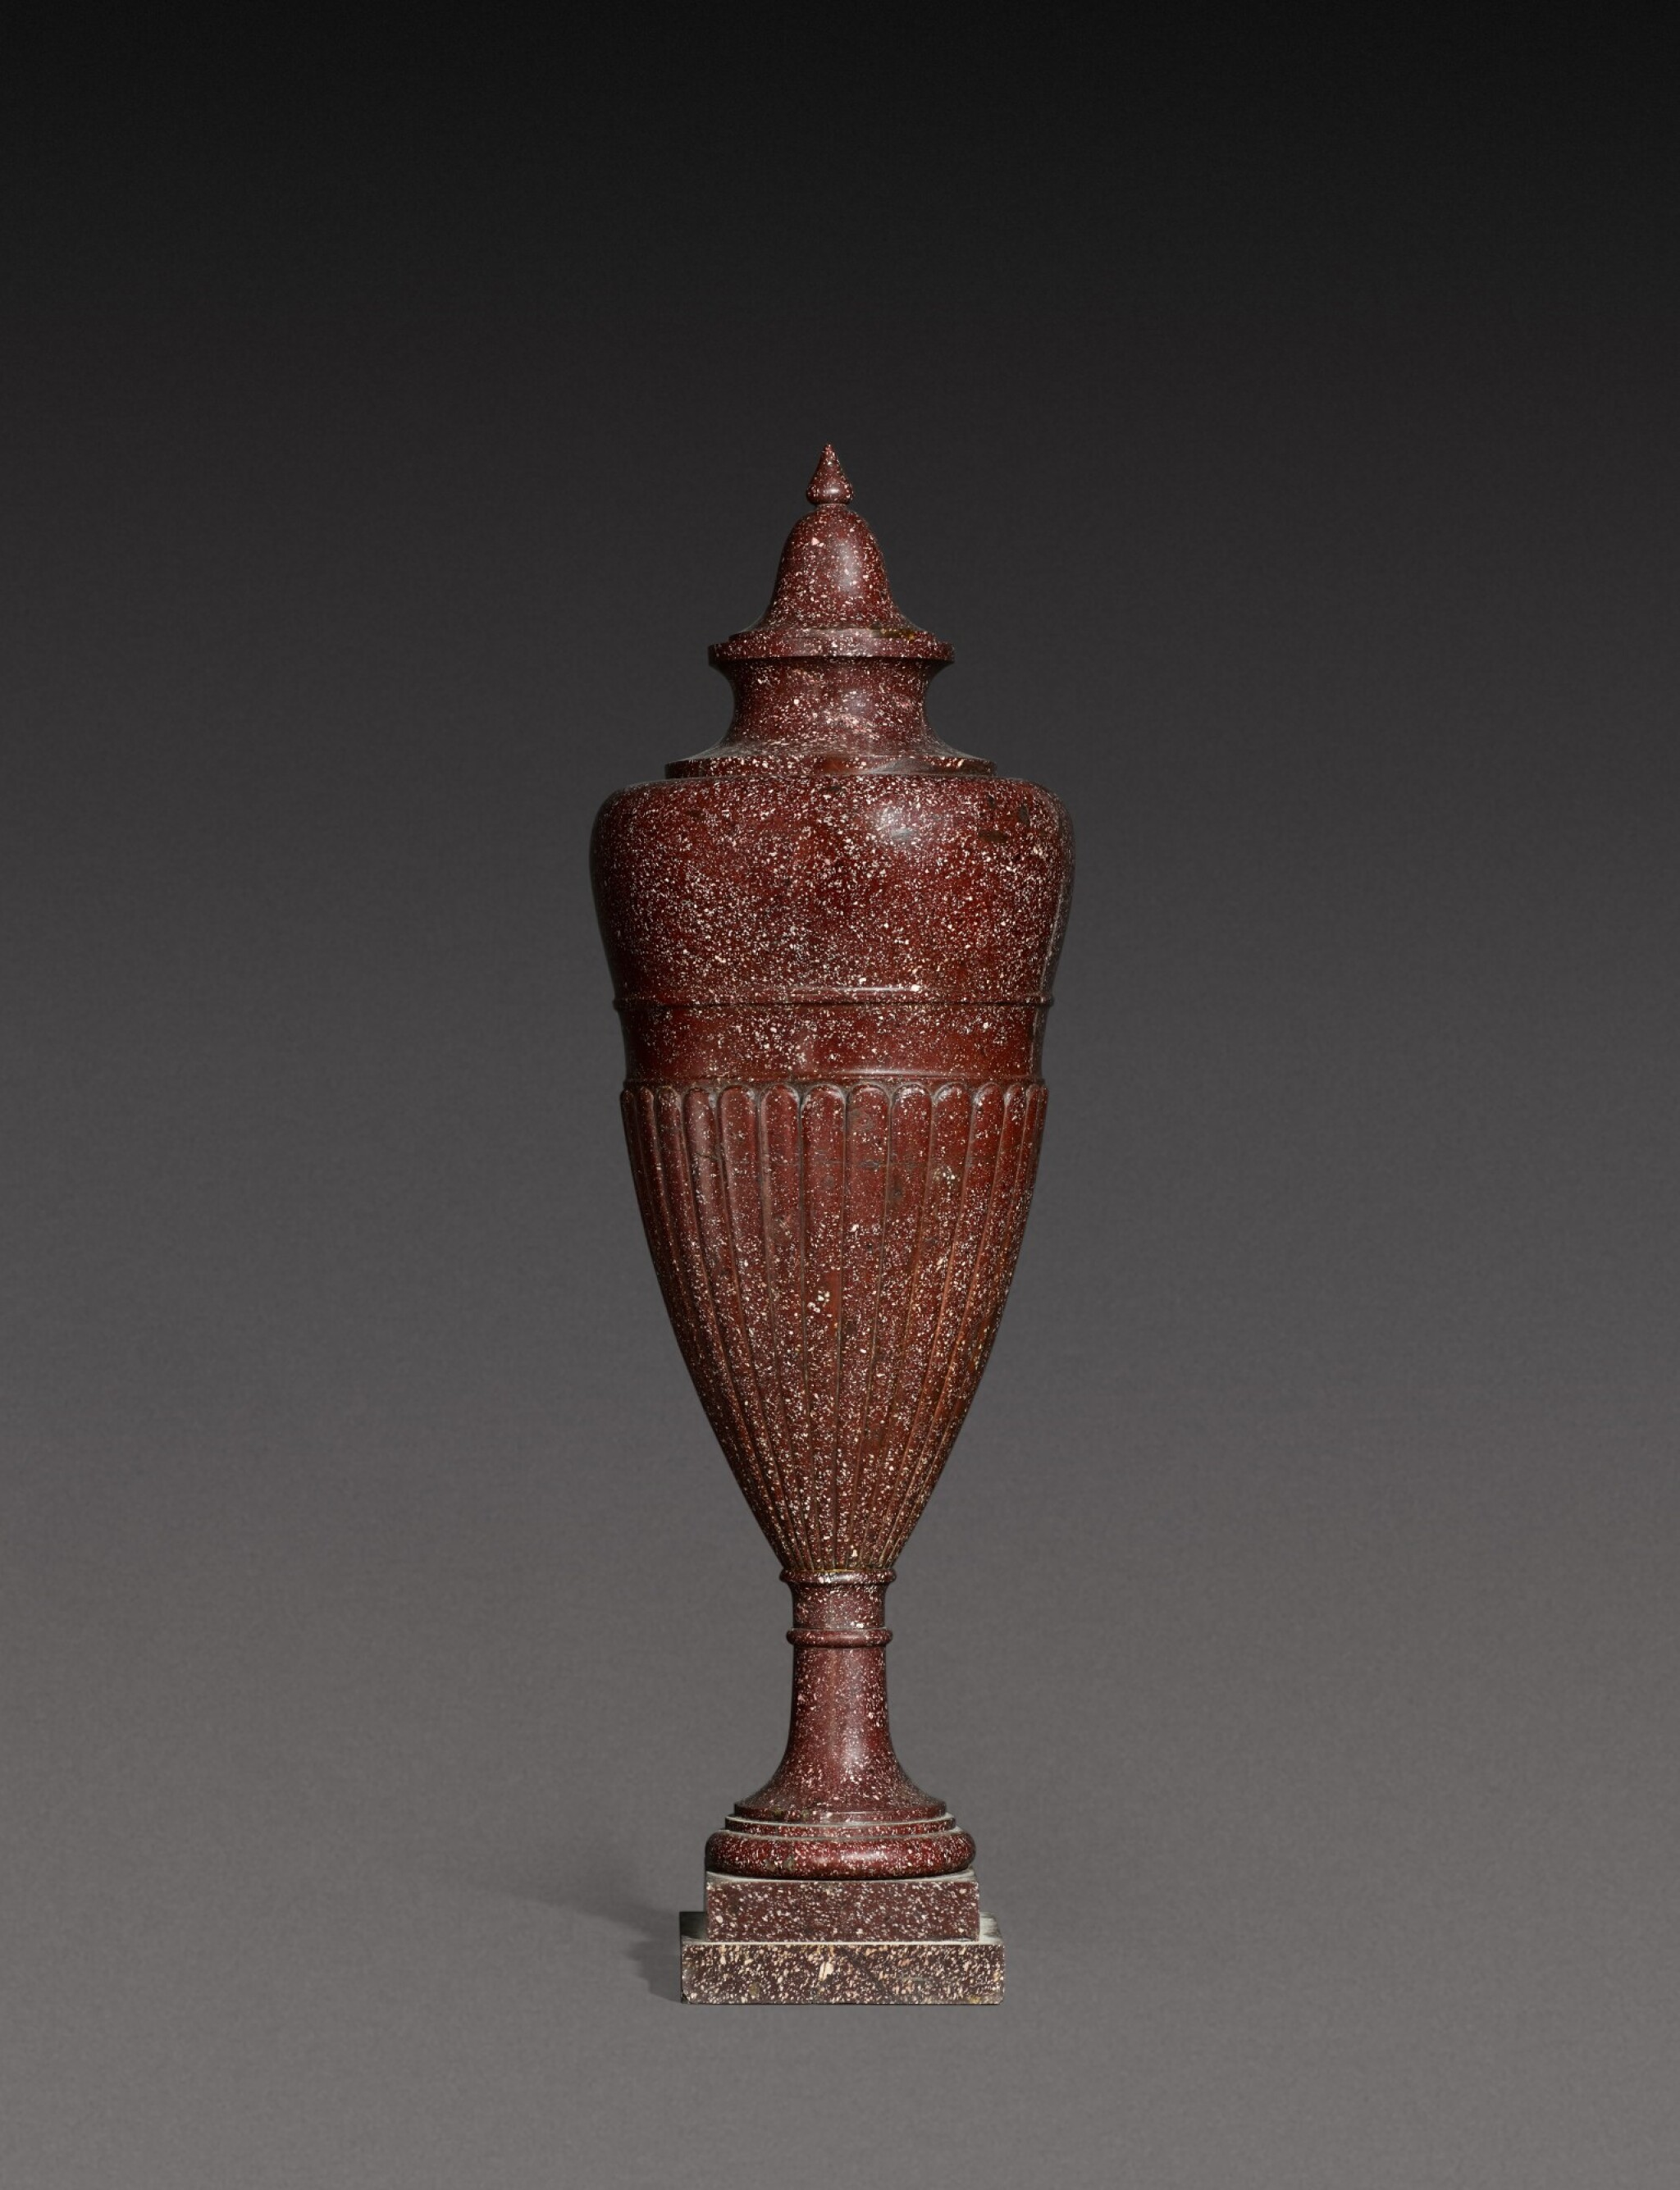 View 1 of Lot 137. An Italian carved porphyry urn, 19th century.